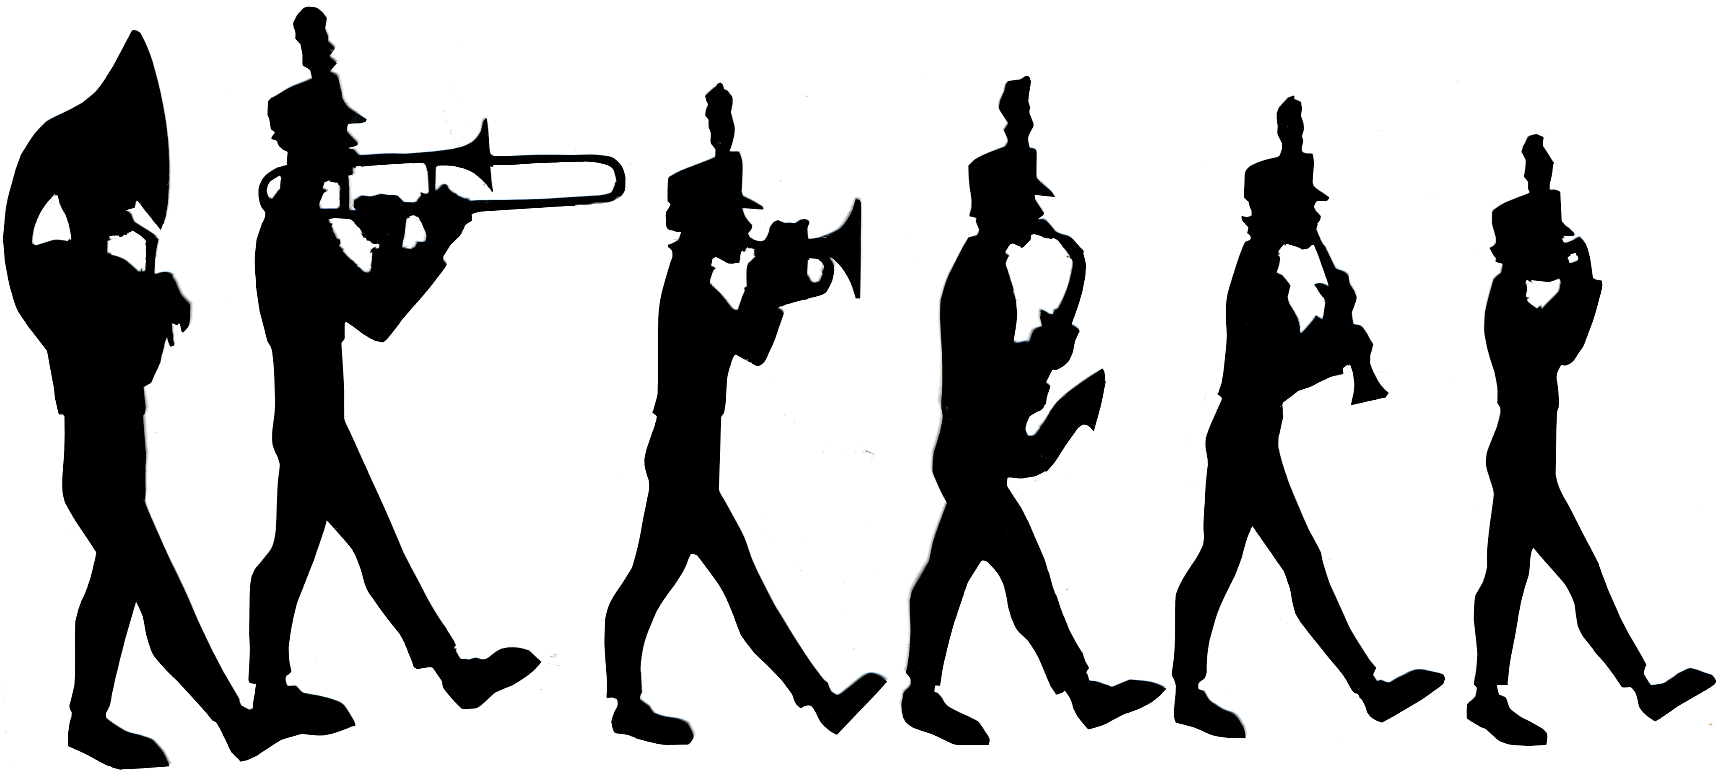 marching band silhouette clip art at getdrawings com free for rh getdrawings com marching band clipart free marching band clip art silhouette